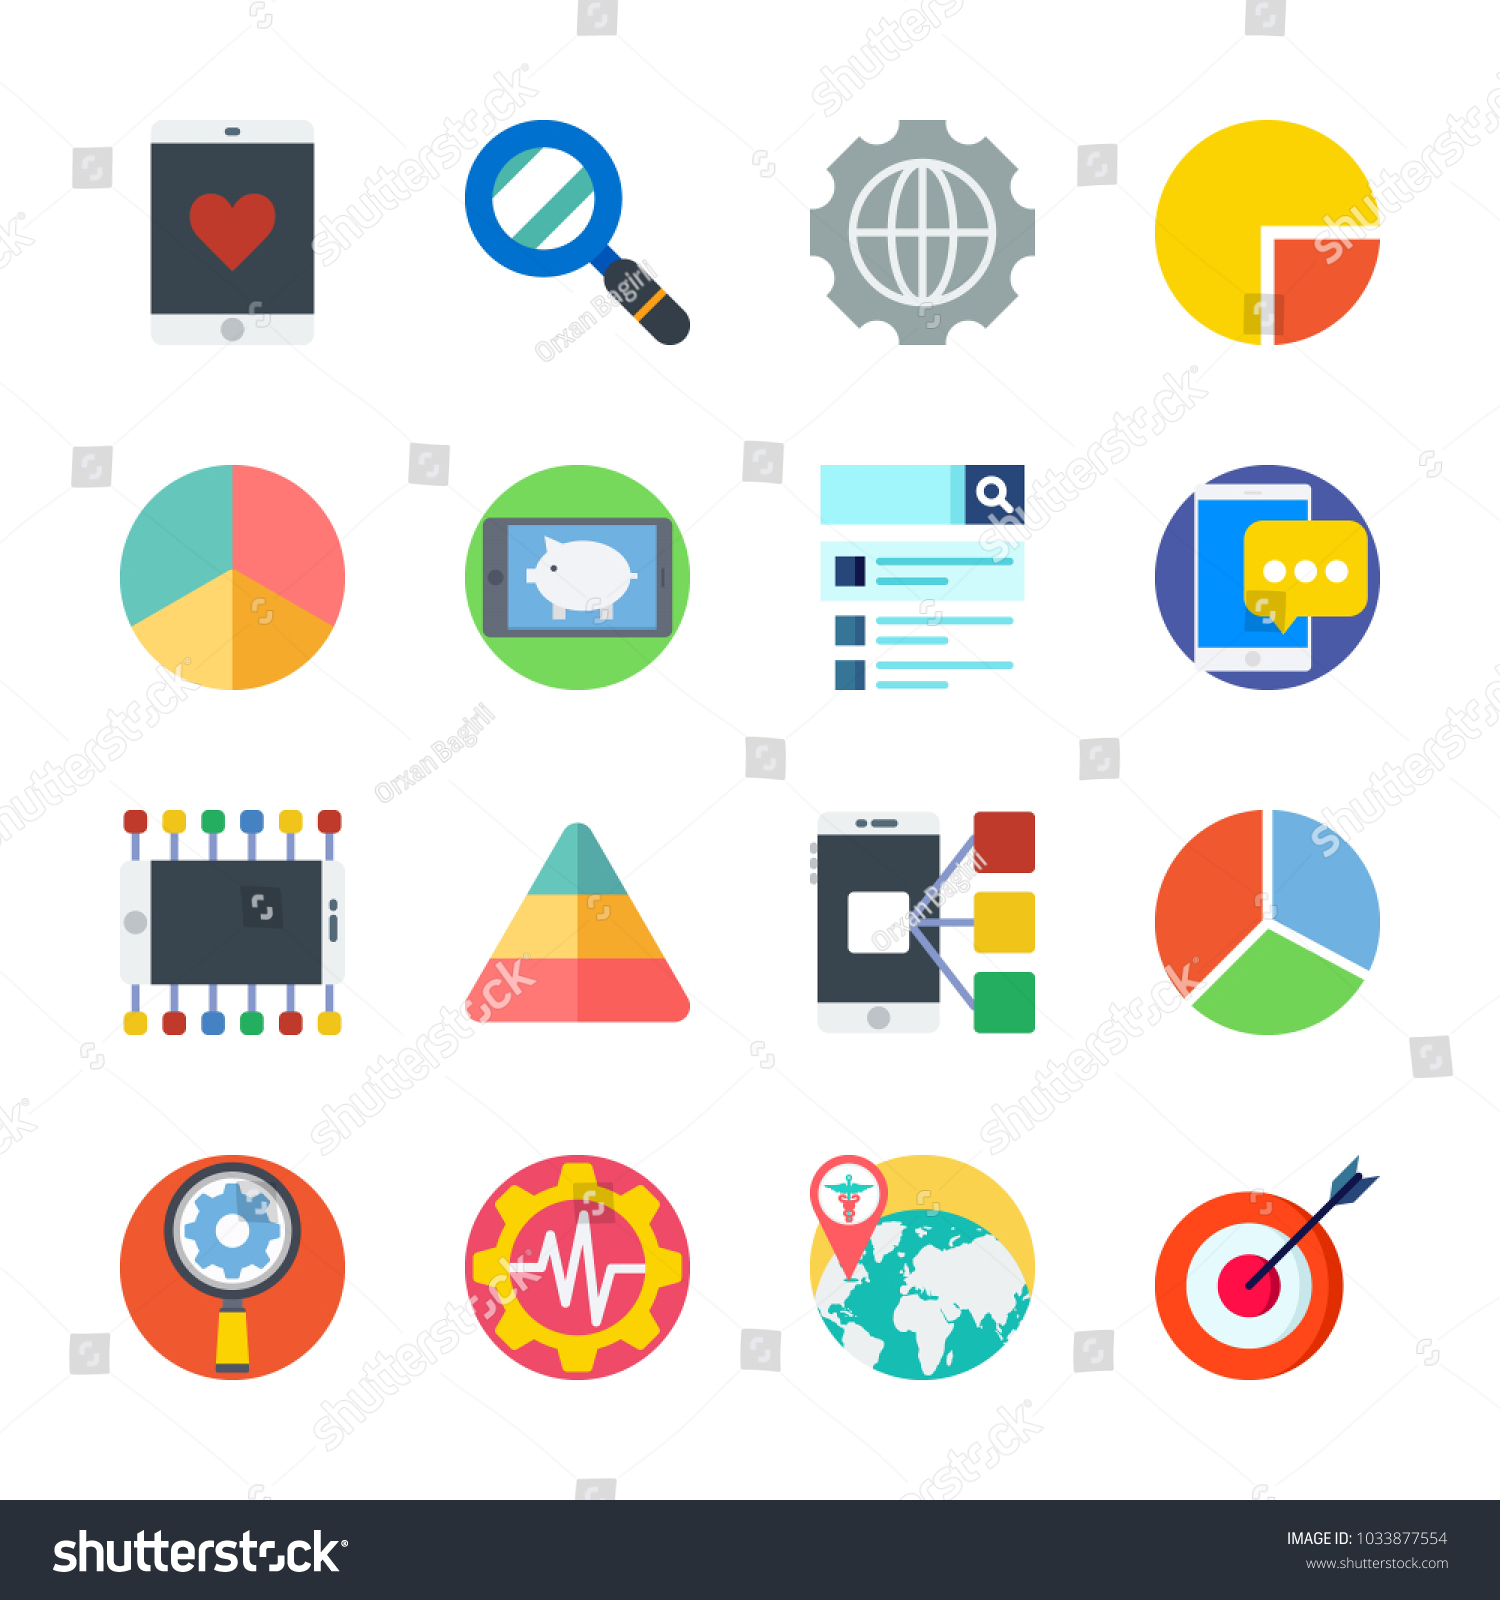 Icon marketing pie chart settings target stock vector 1033877554 icon marketing with pie chart settings target worldwide and pyramid nvjuhfo Image collections